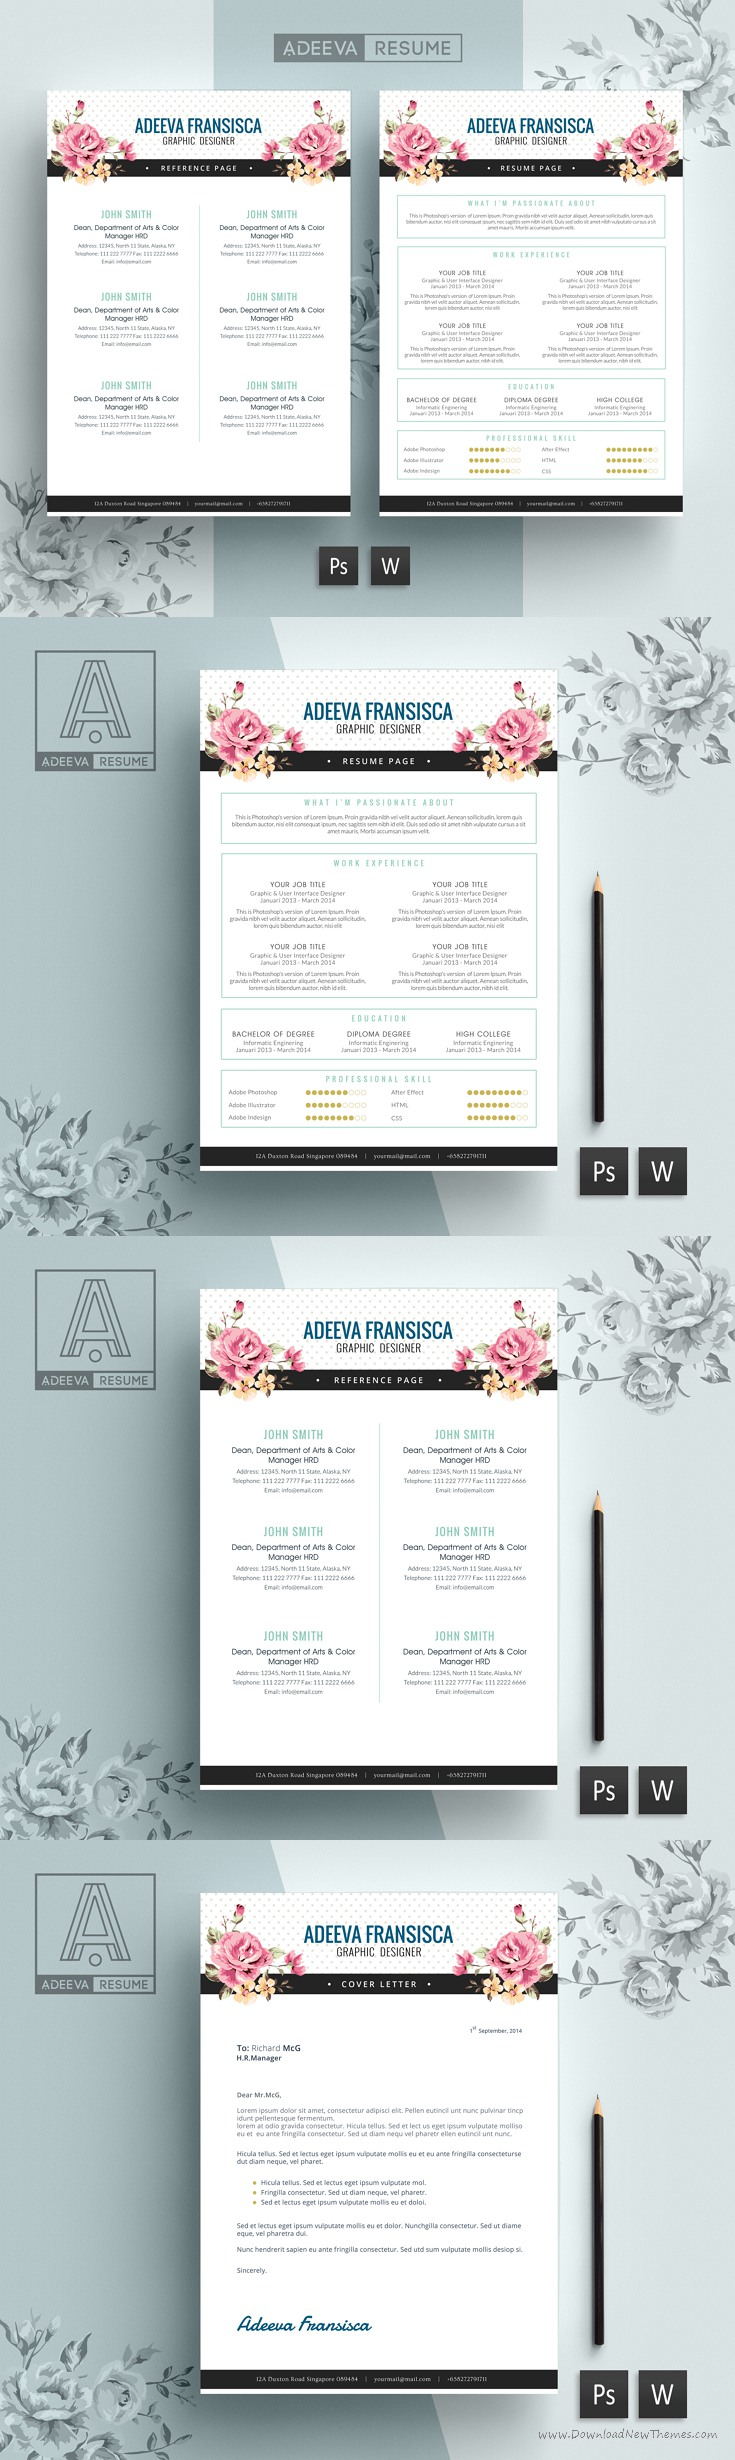 Step By Step Resume Professional Resume Template Fransisca Includes A #resume #cv With .